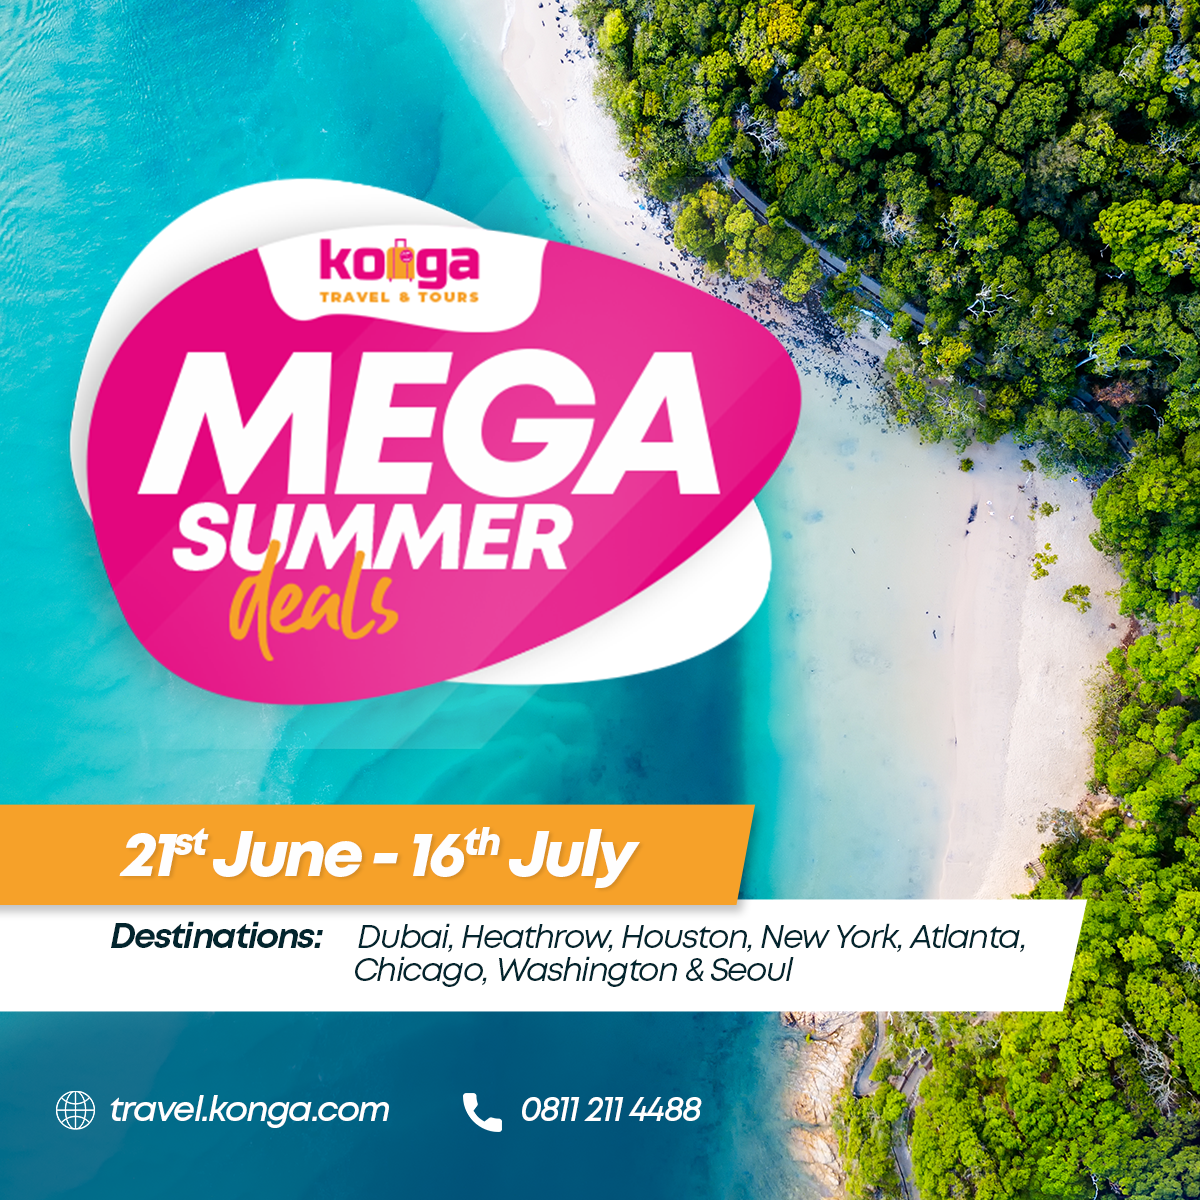 Konga travels dangles attractive summer packages, visa, passport services for travellers